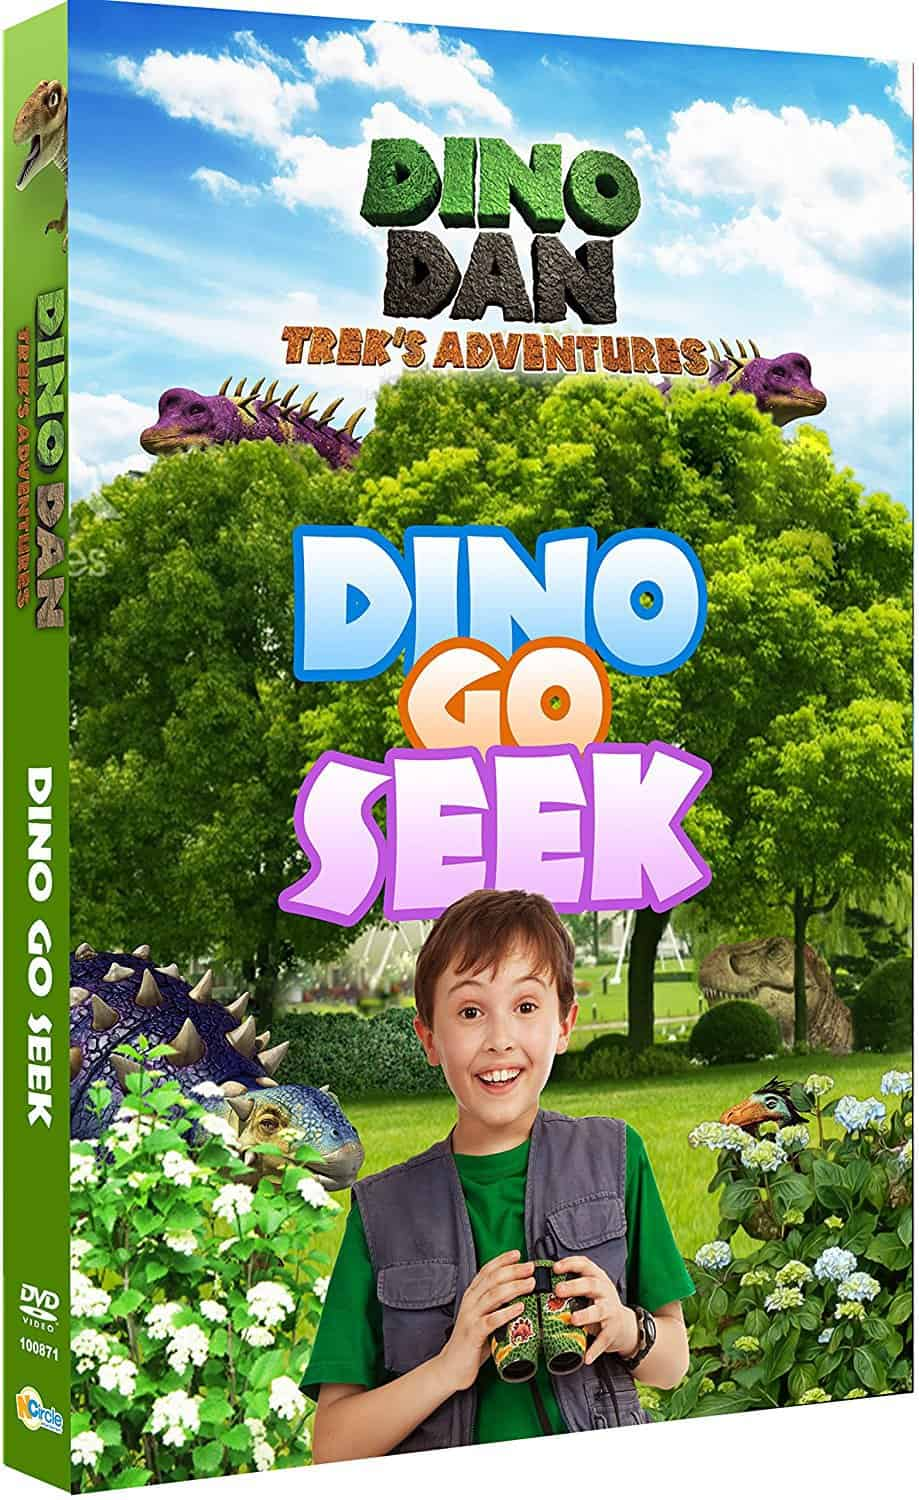 Dino Dan: Trek's Adventures-Dino Go Seek DVD Review & Giveaway